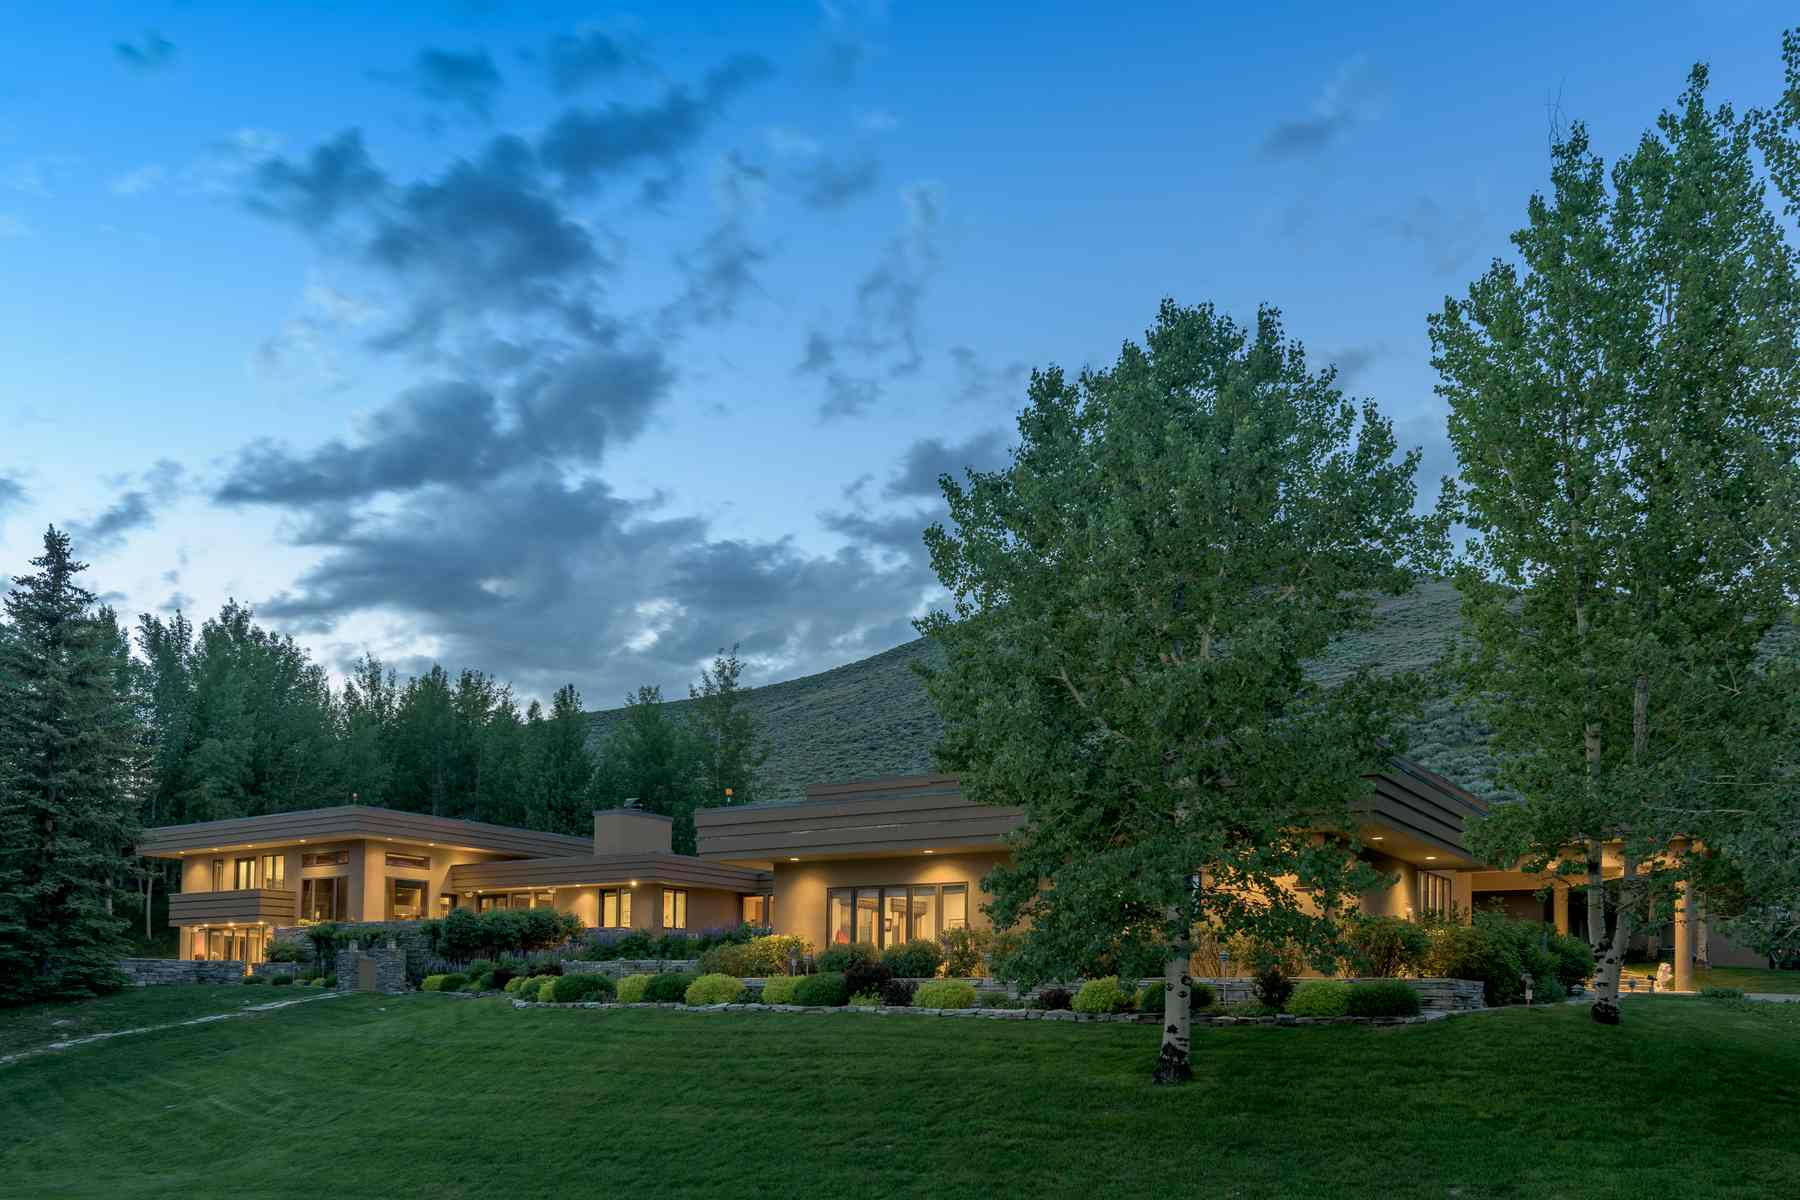 Casa Unifamiliar por un Venta en Spectacular Elevated Setting 455 N. Bigwood Drive Ketchum, Idaho 83340